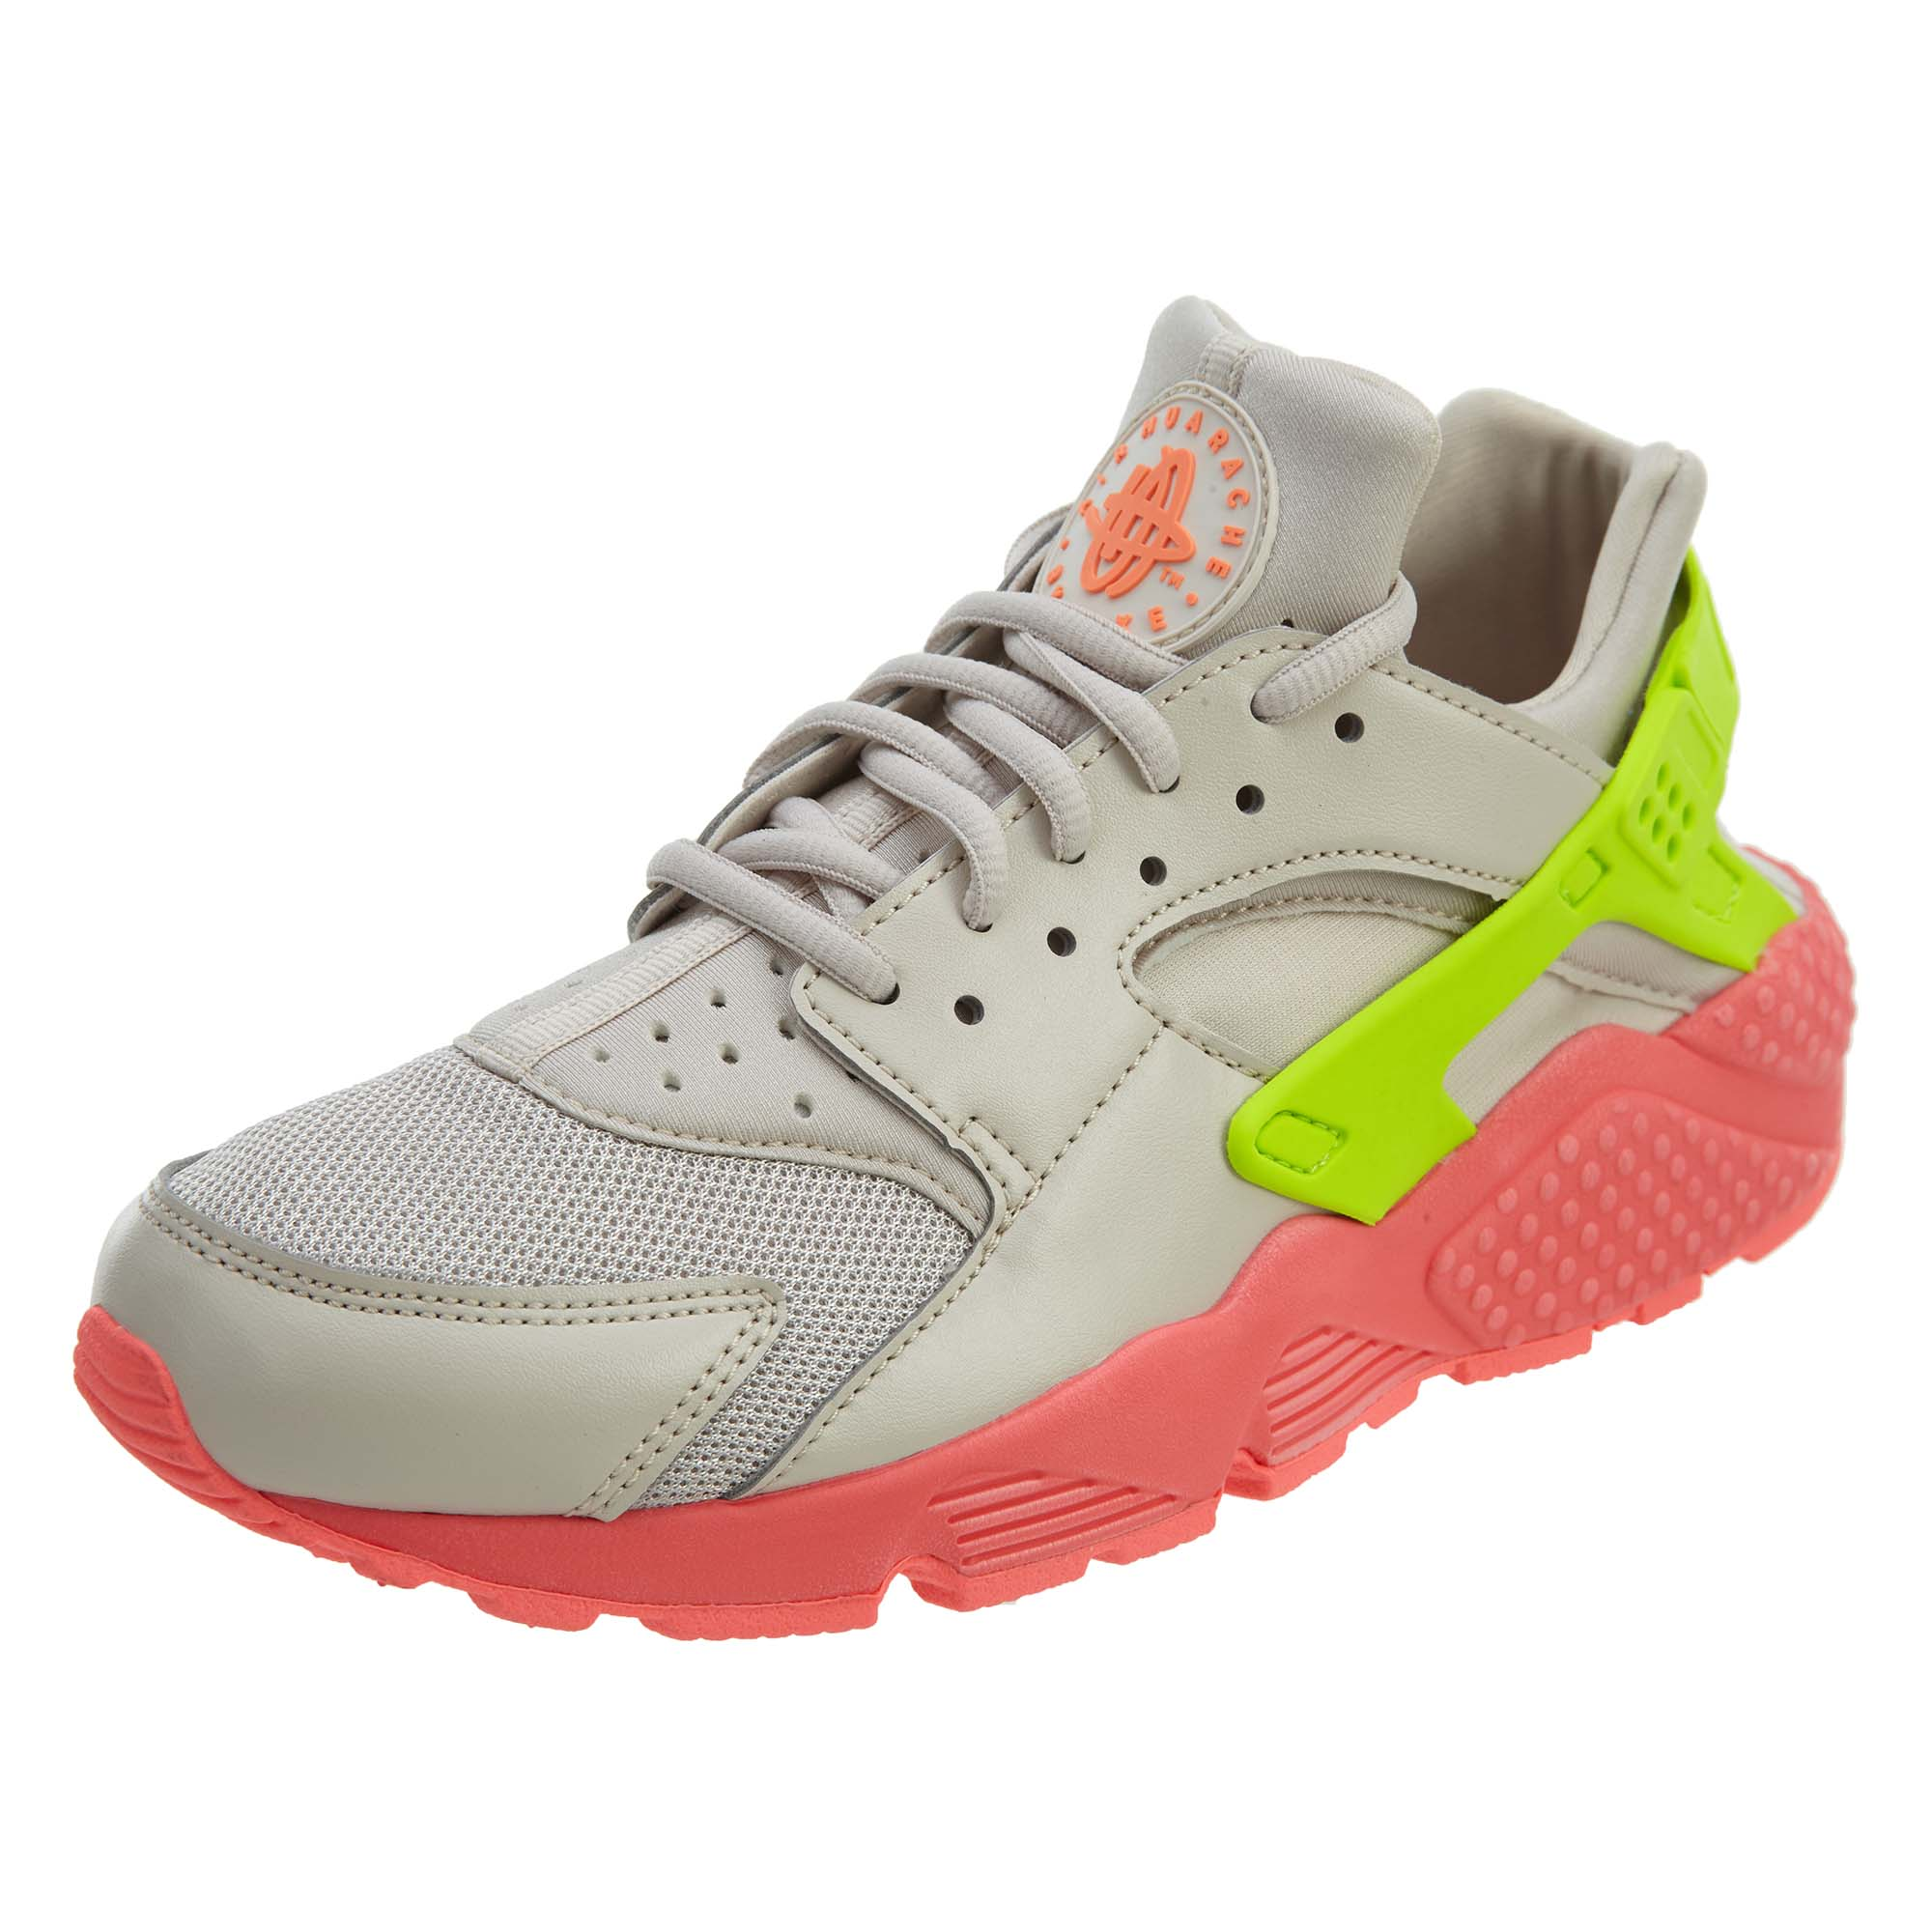 separation shoes 164e7 4b7a6 Details about Nike Womens Air Huarache Run Running Shoes 634835-033